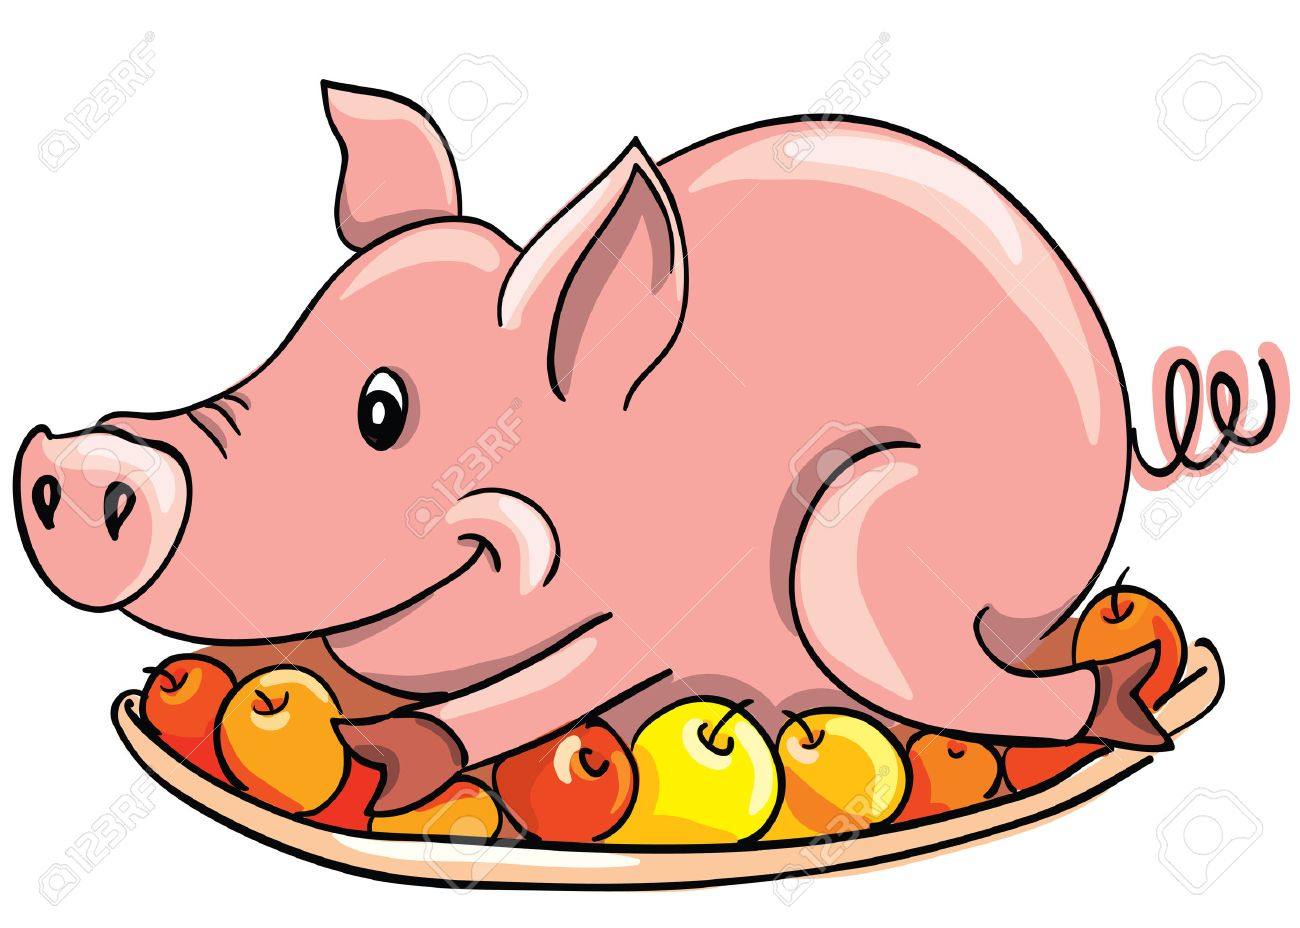 Whole hog roast clipart black and white Pig Roast Clipart | Free download best Pig Roast Clipart on ... black and white